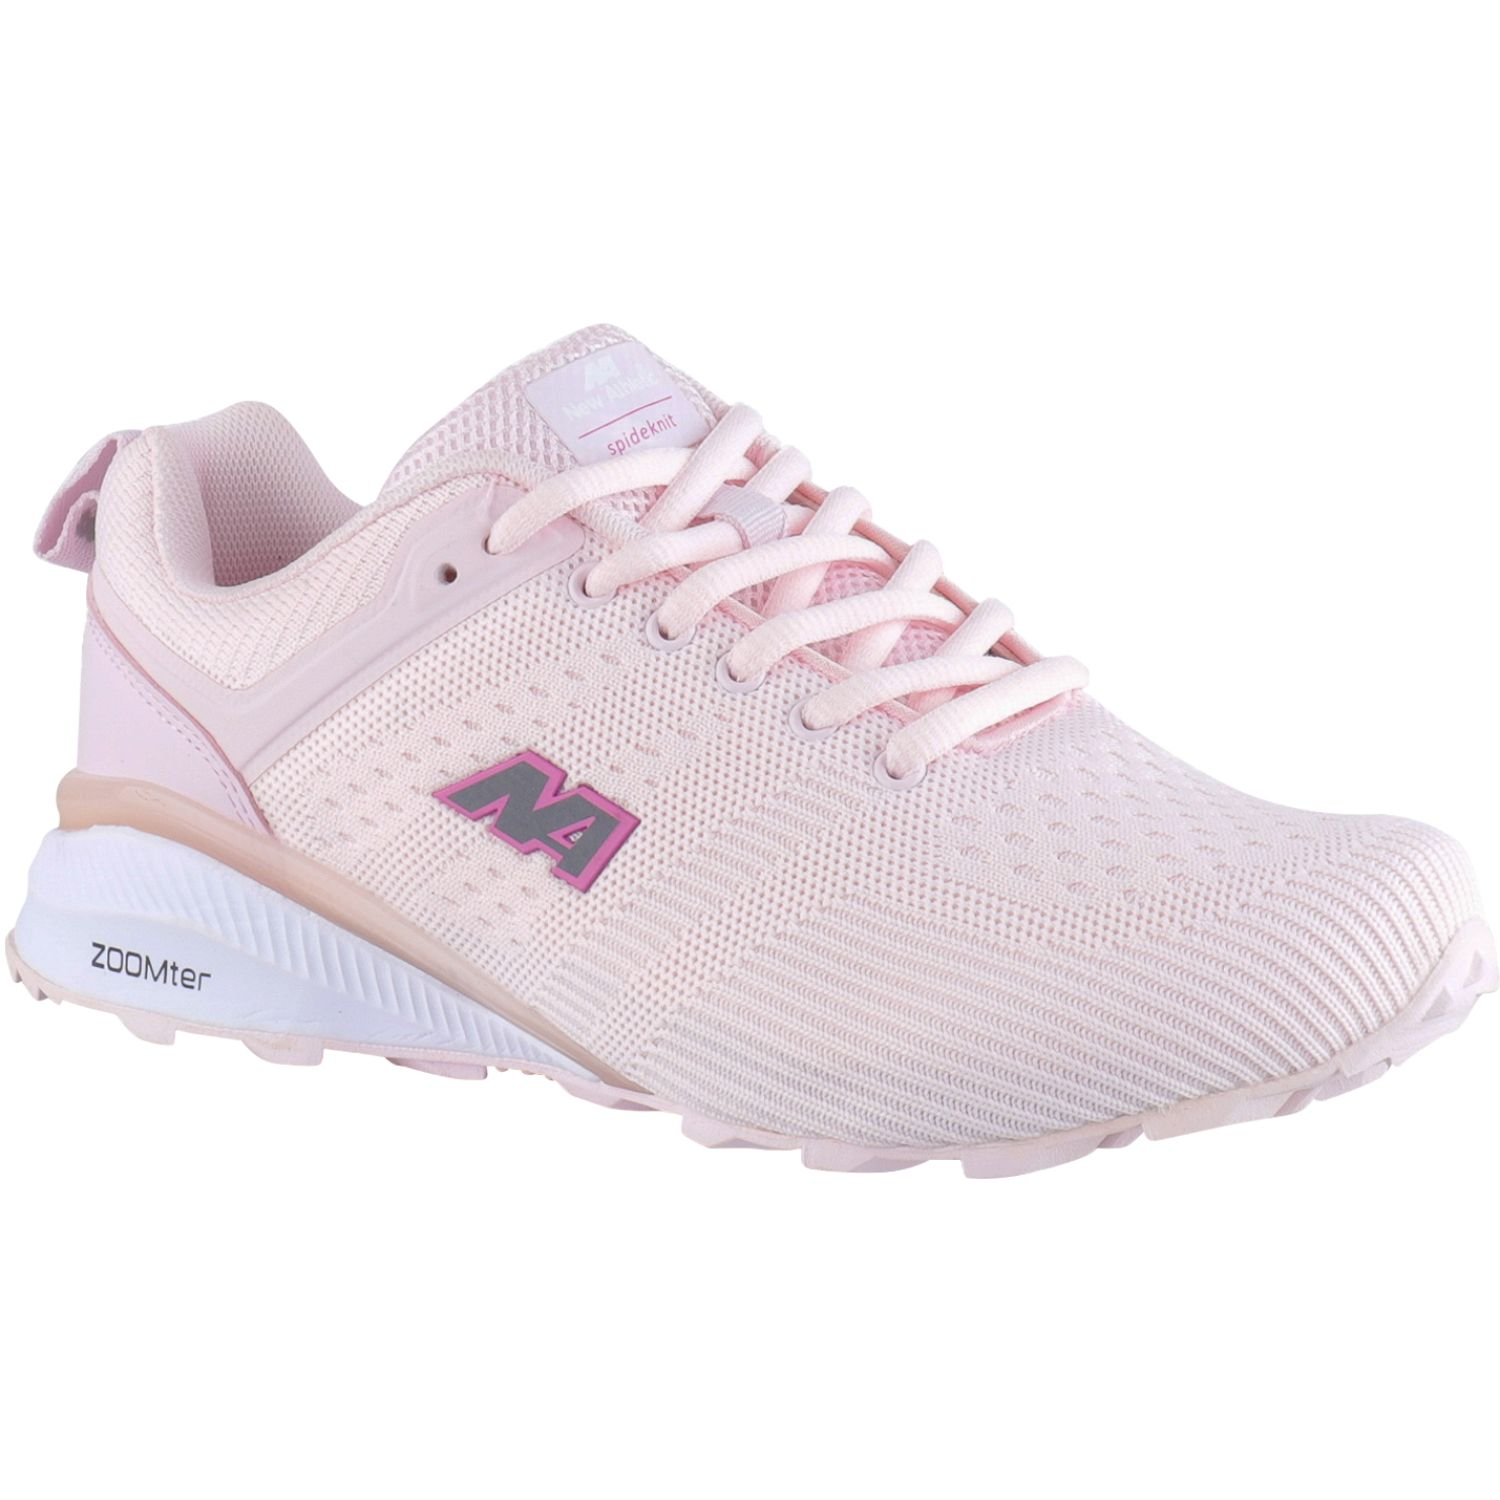 NEW ATHLETIC Zumstar Rosado Calzado de correr